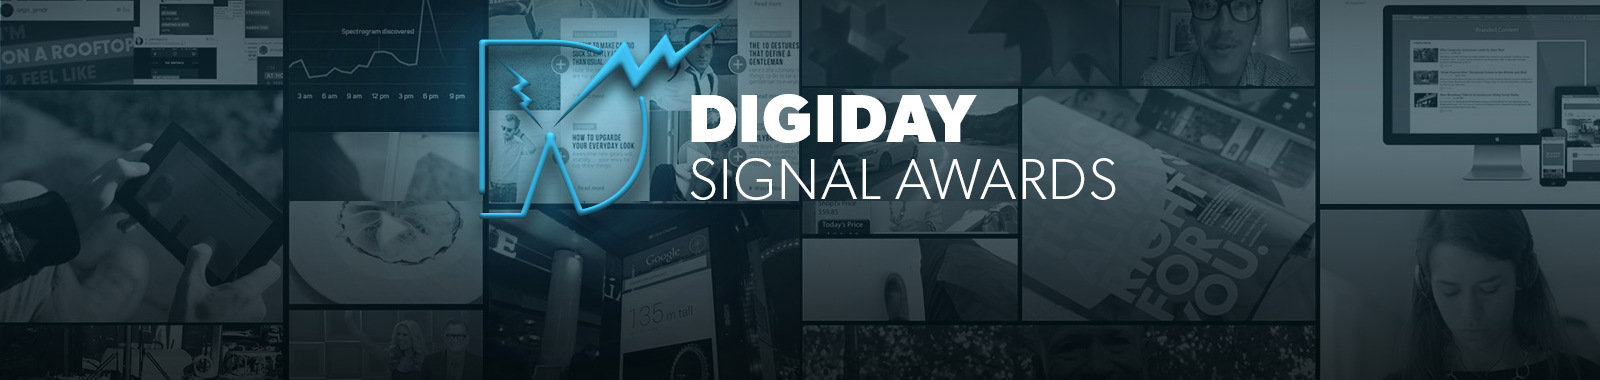 MarketShare DecisionCloud Named Best Predictive Marketing Platform in 2015 Digiday Signal Awards